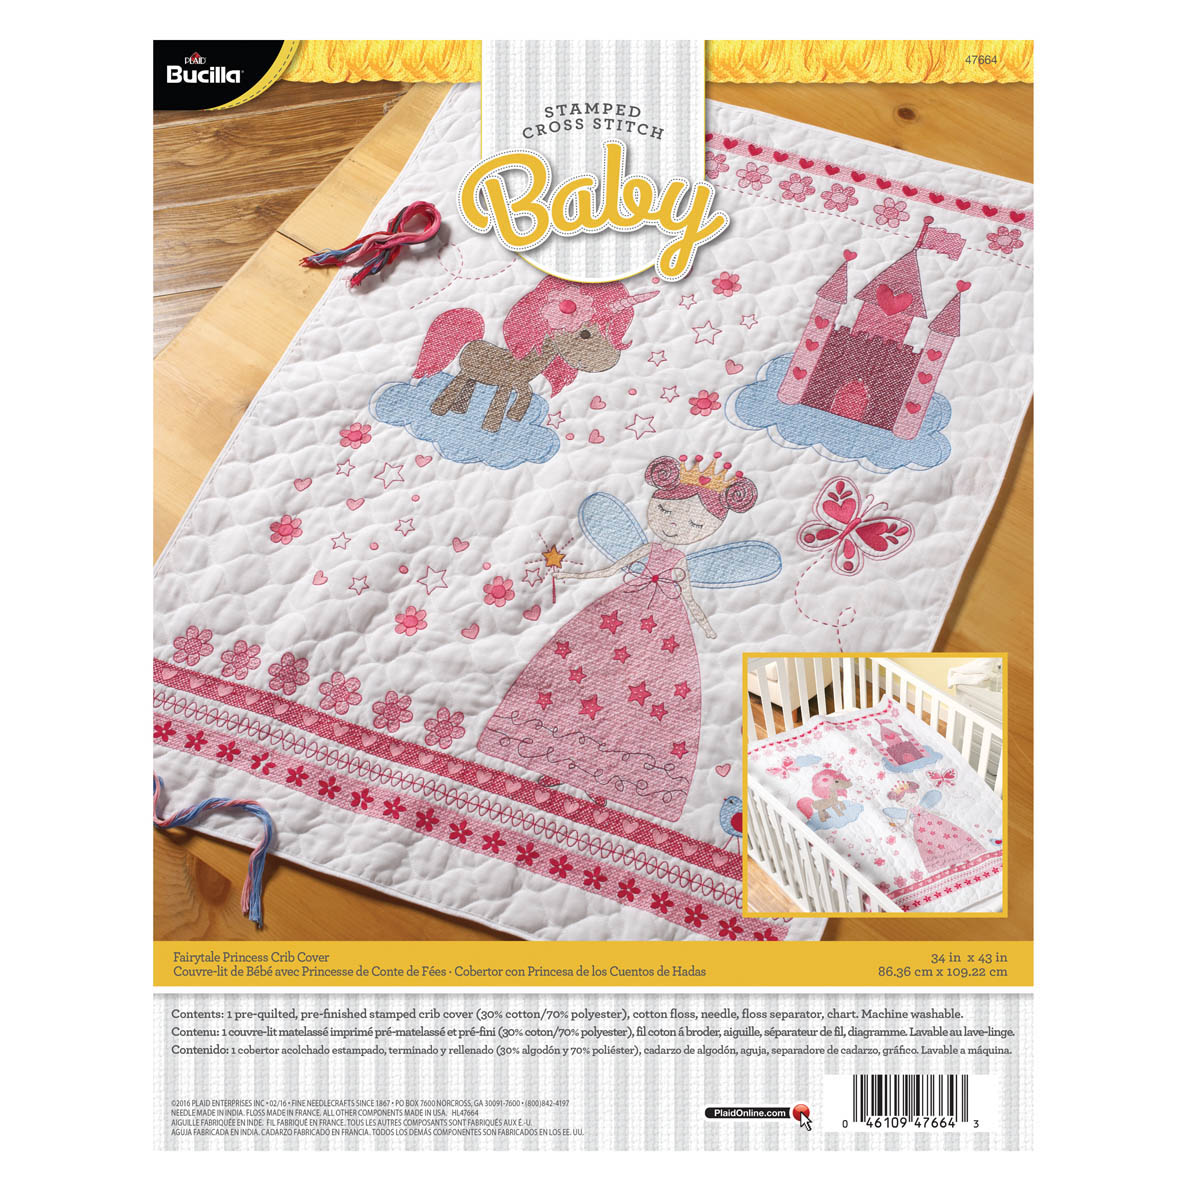 Bucilla ® Baby - Stamped Cross Stitch - Crib Ensembles - Fairytale Princess - Crib Cover